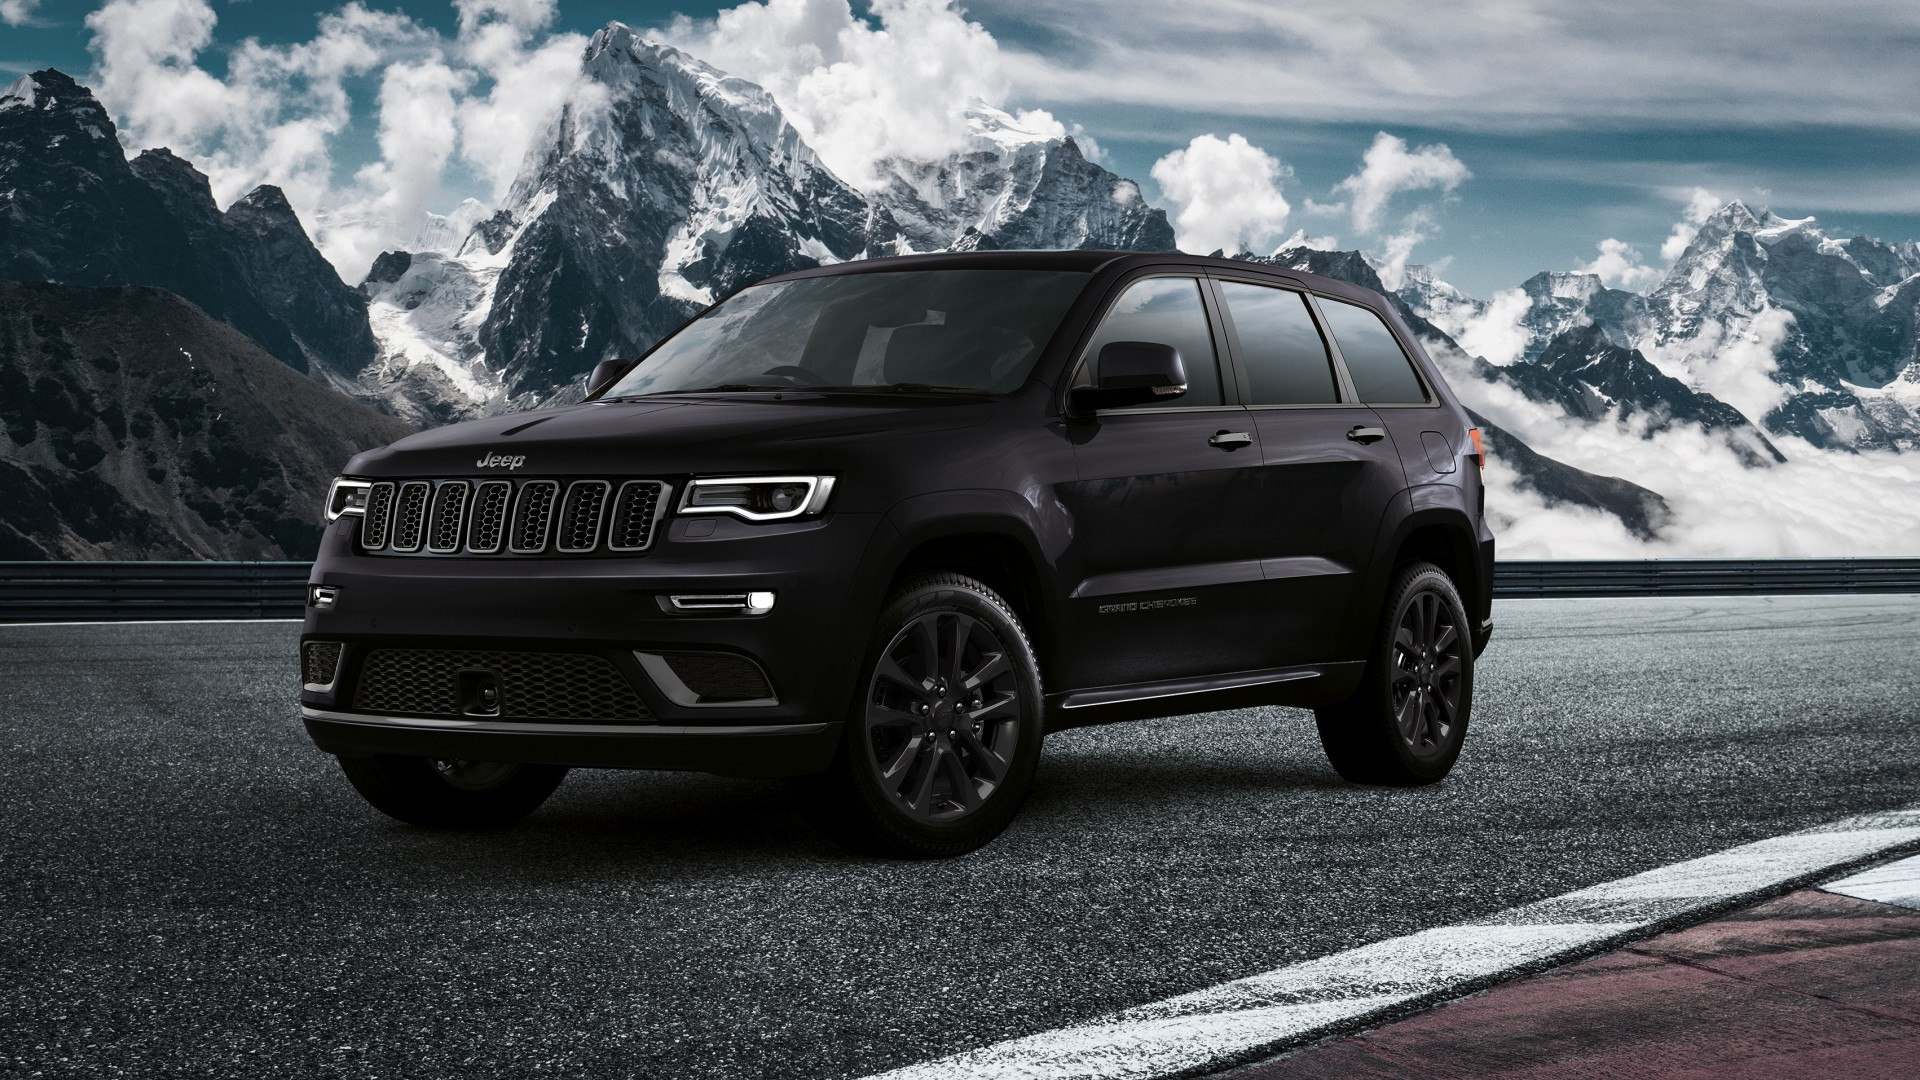 2019 jeep grand cherokee s wallpaper hd car wallpapers  2019 jeep grand cherokee limited x price